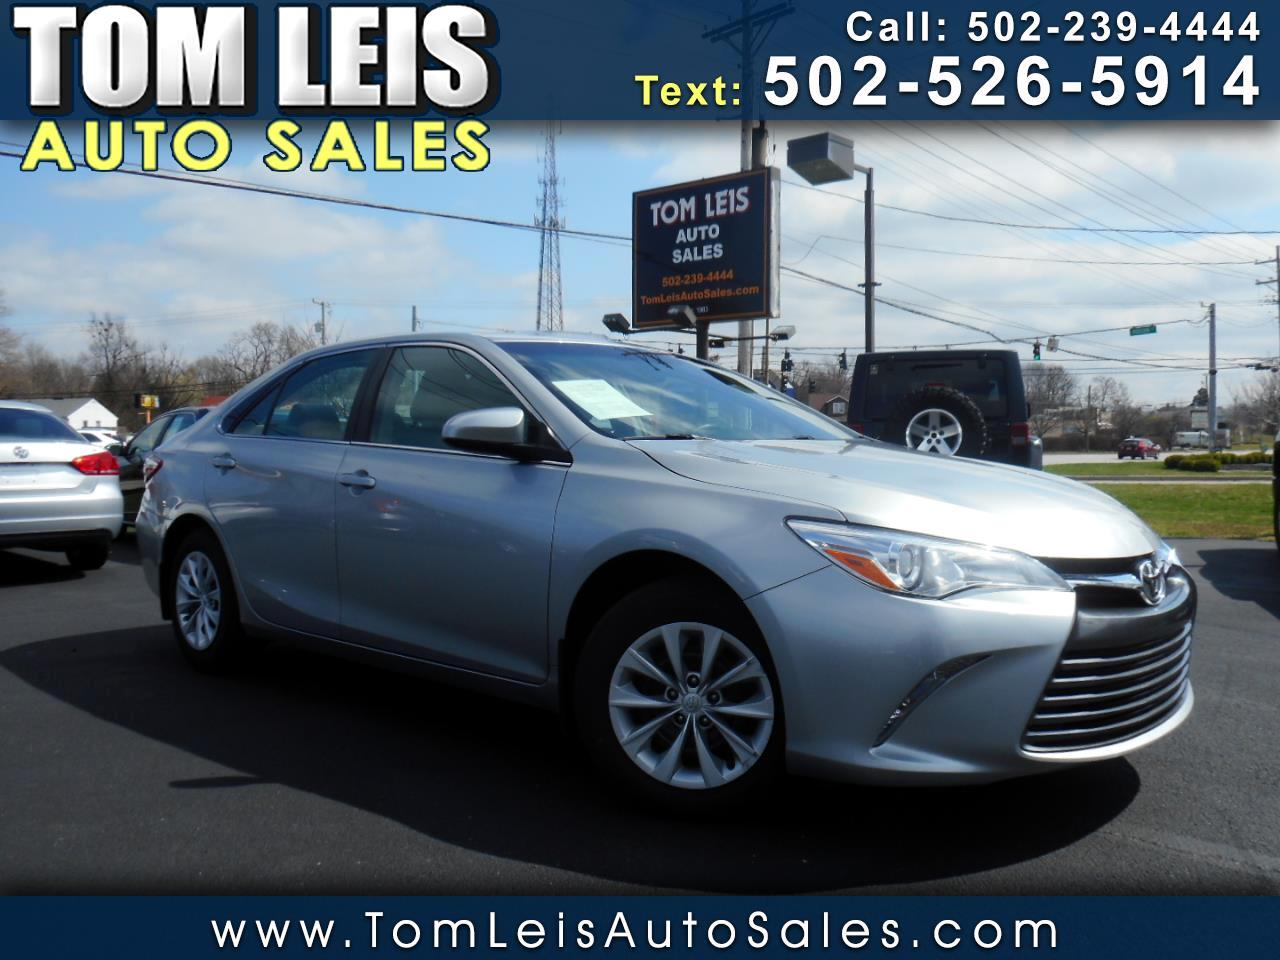 Toyota Camry 4dr Sdn I4 Auto LE (Natl) 2015